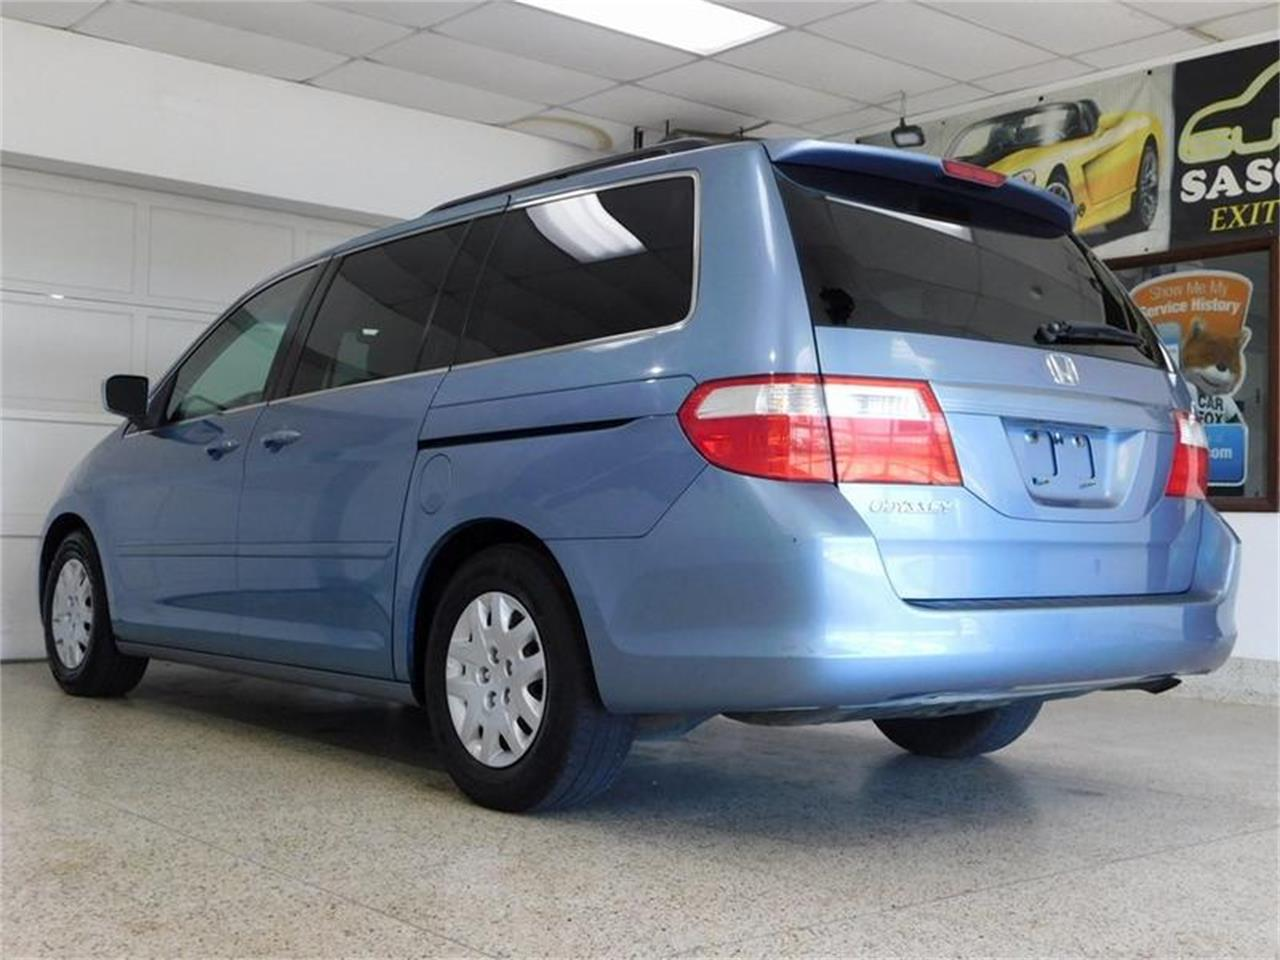 Large Picture of '06 Honda Odyssey located in Hamburg New York - $6,580.00 Offered by Superior Auto Sales - QPN6